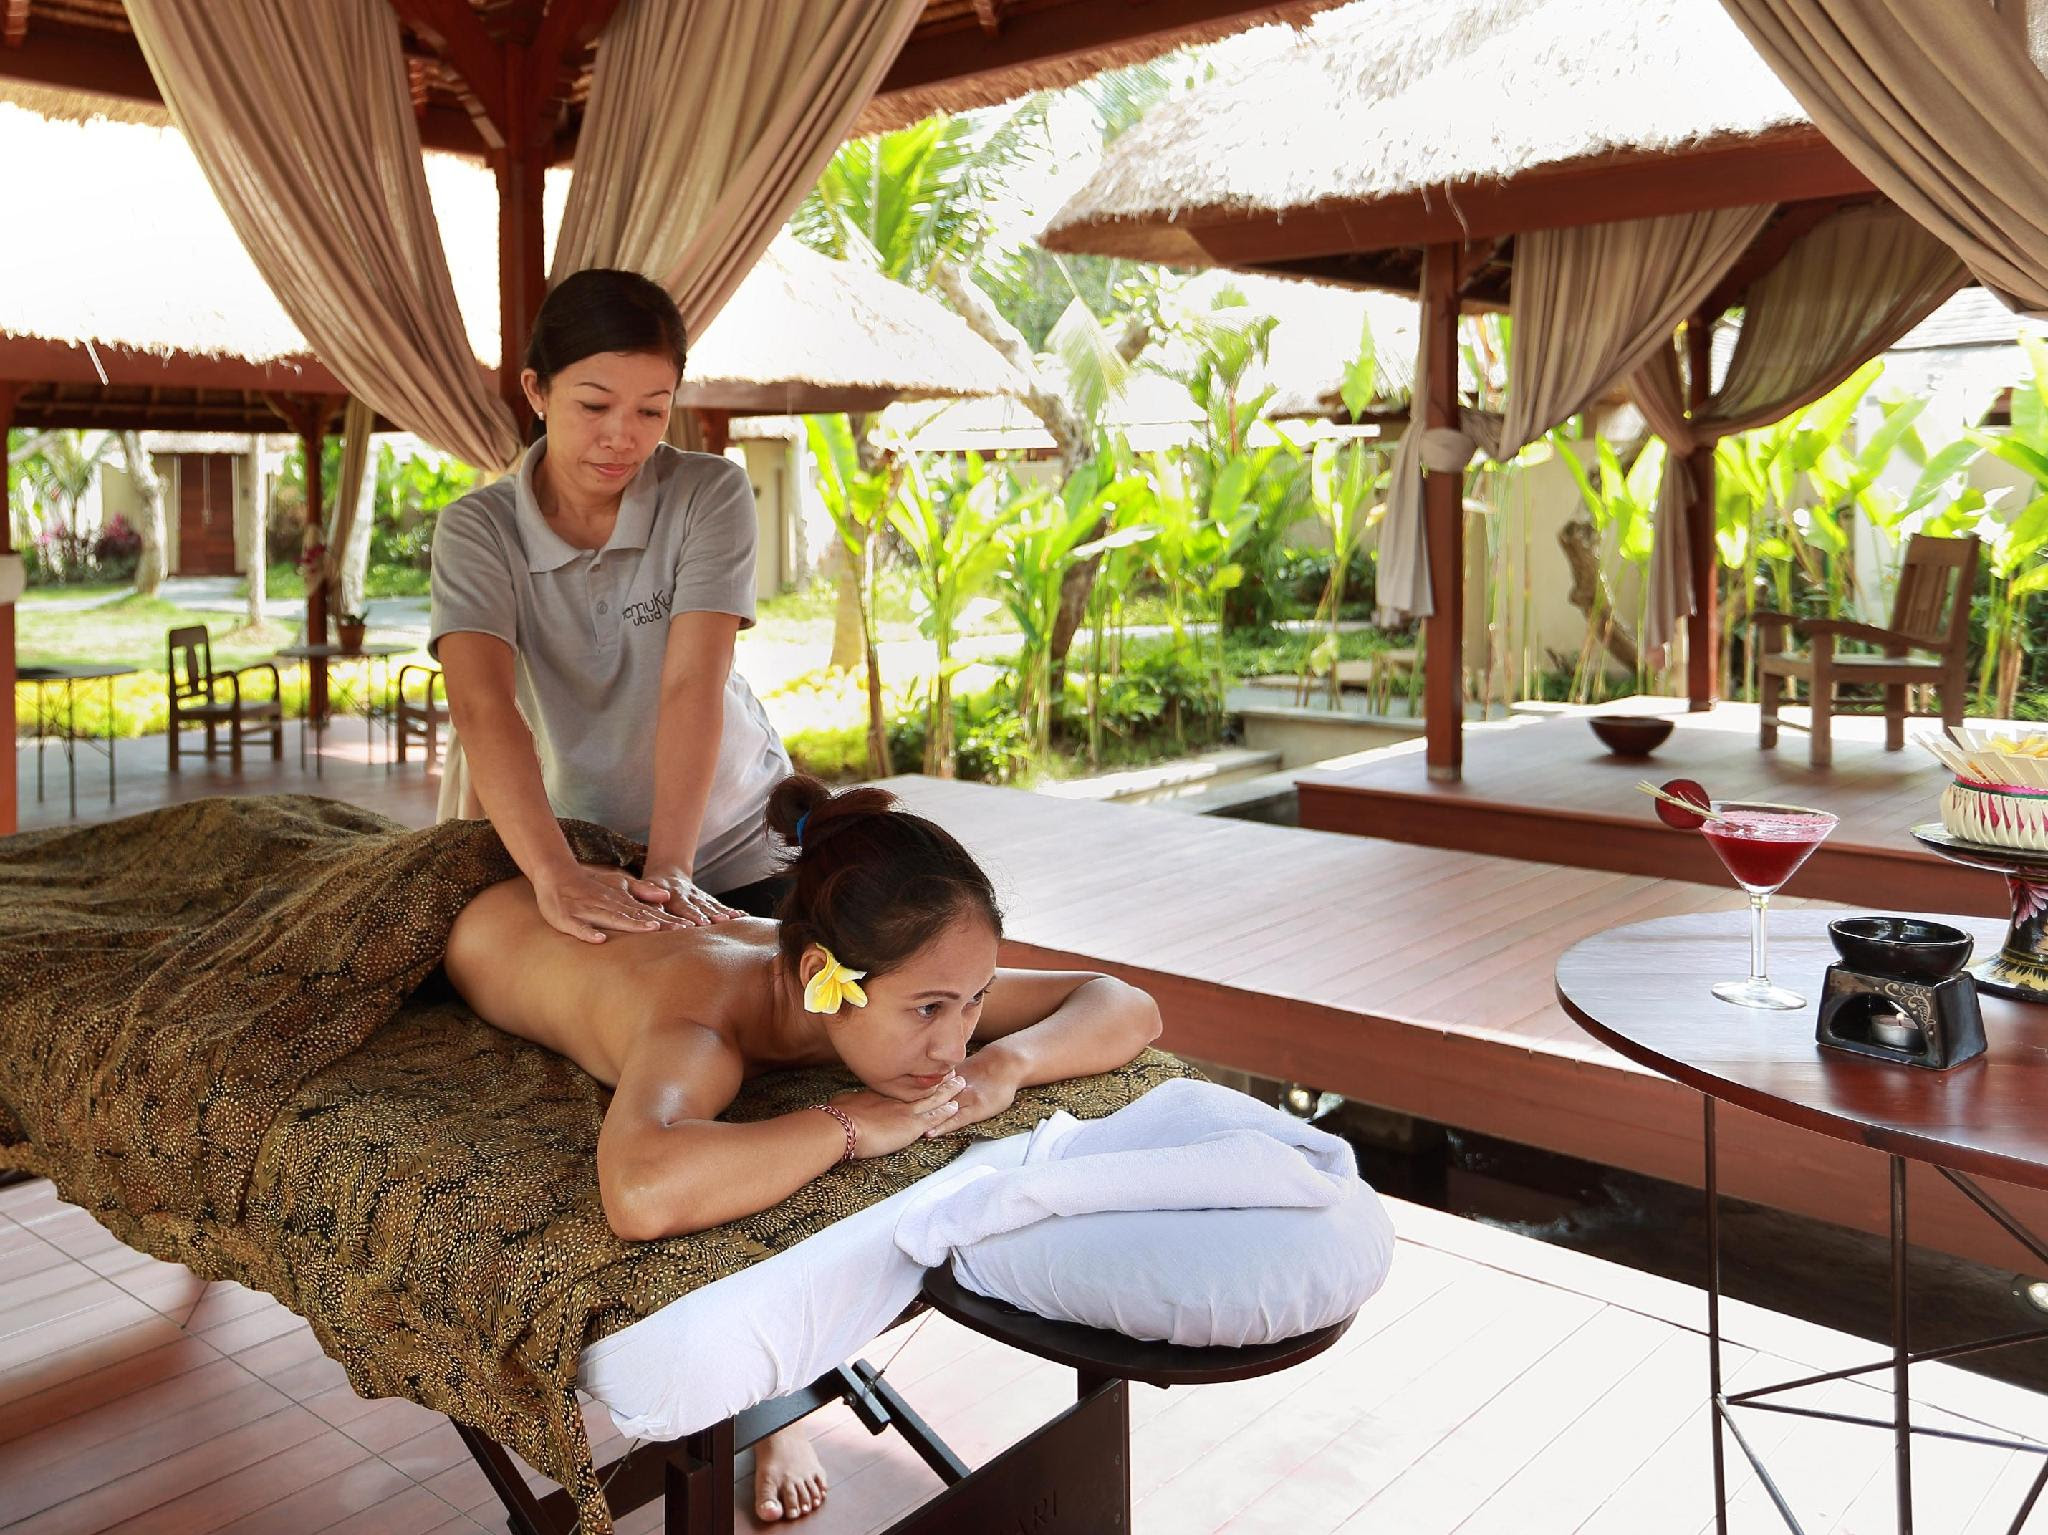 Temuku Ubud Spa Bali Map,Things to do in Bali Island,Tourist Attractions in Bali,Map of Temuku Ubud Spa Bali,Temuku Ubud Spa Bali accommodation destinations attractions hotels map reviews photos pictures